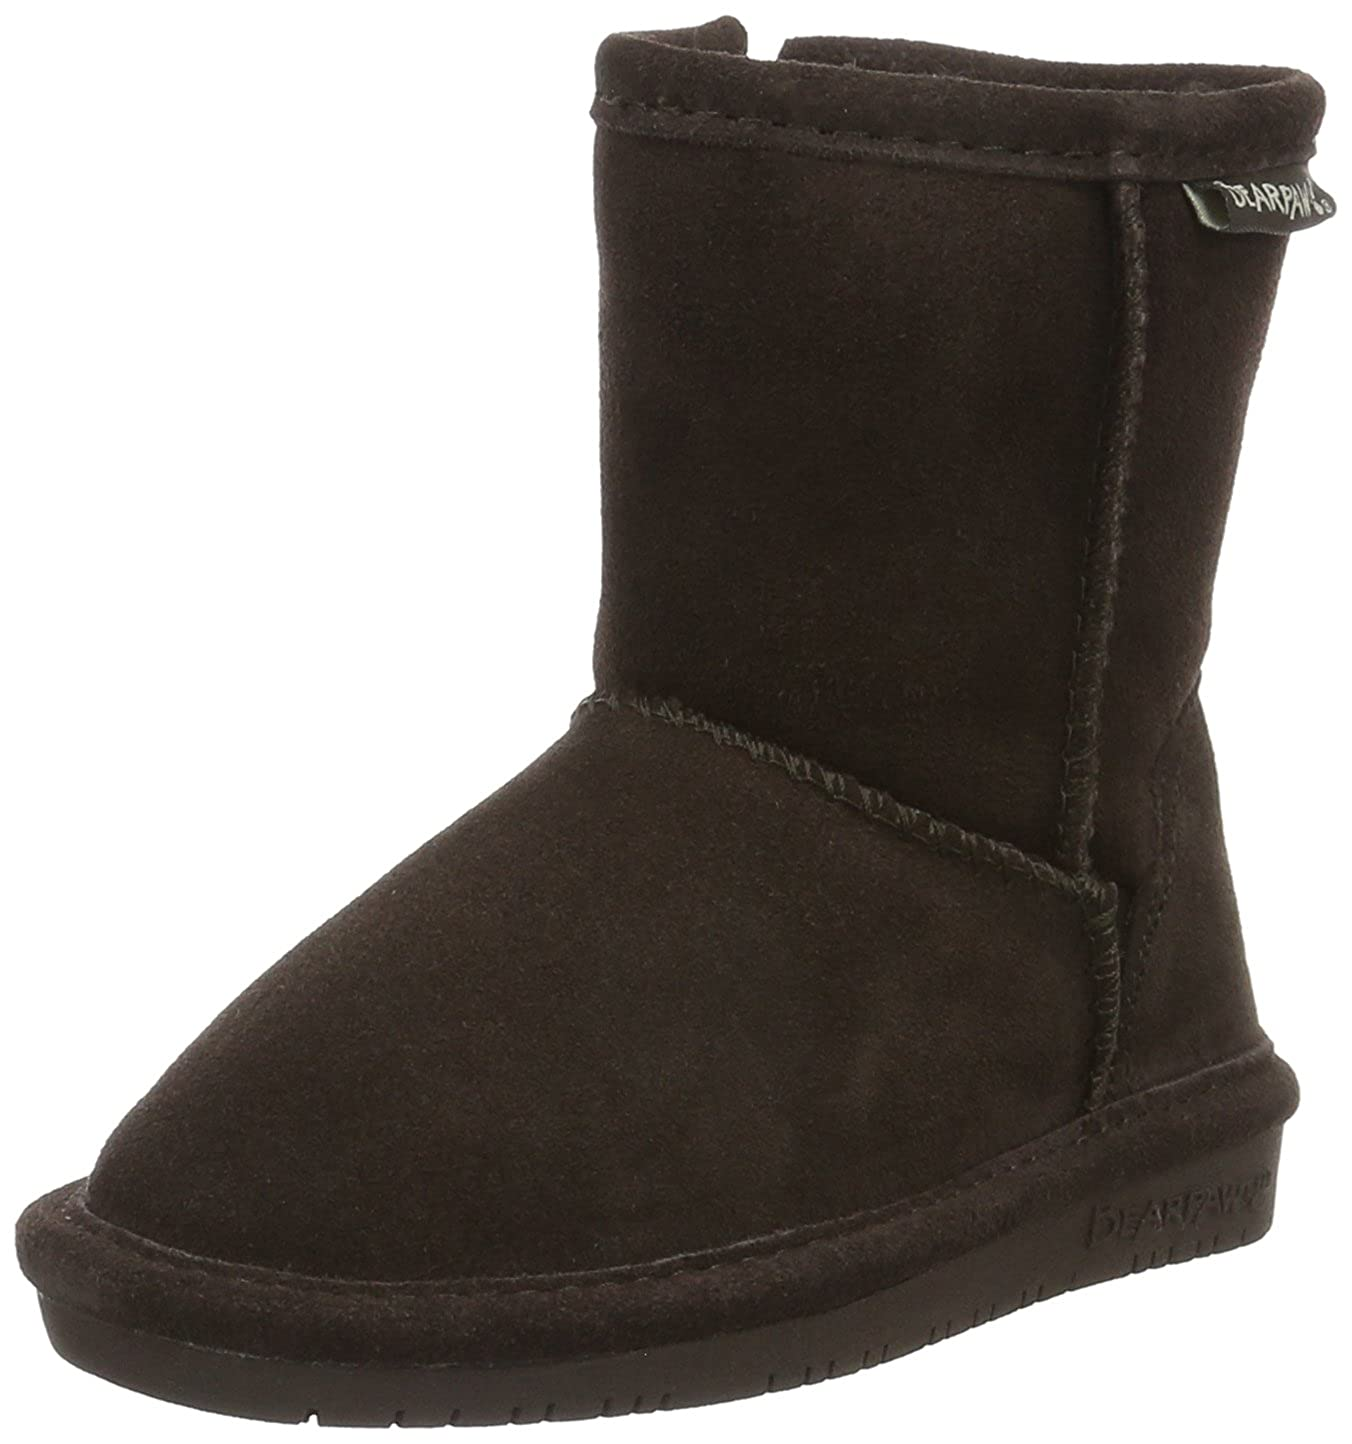 BEARPAW Kids' Emma Toddler Zipper Mid Calf Boot 608TZ